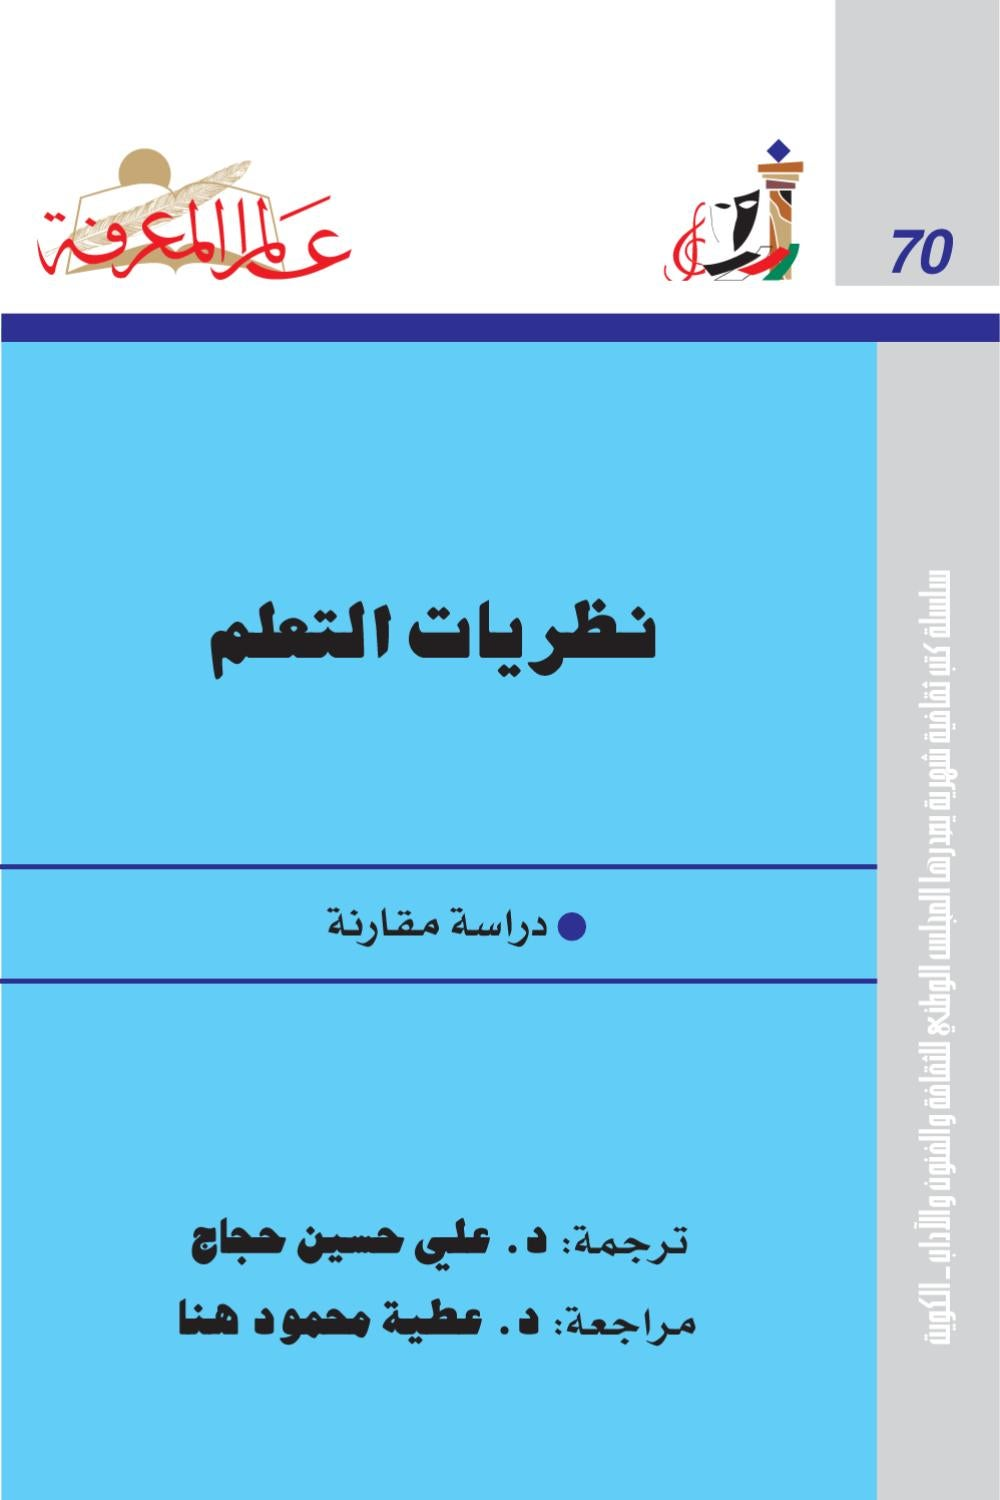 60fd0aba59442 070 by Qmr alzman - issuu